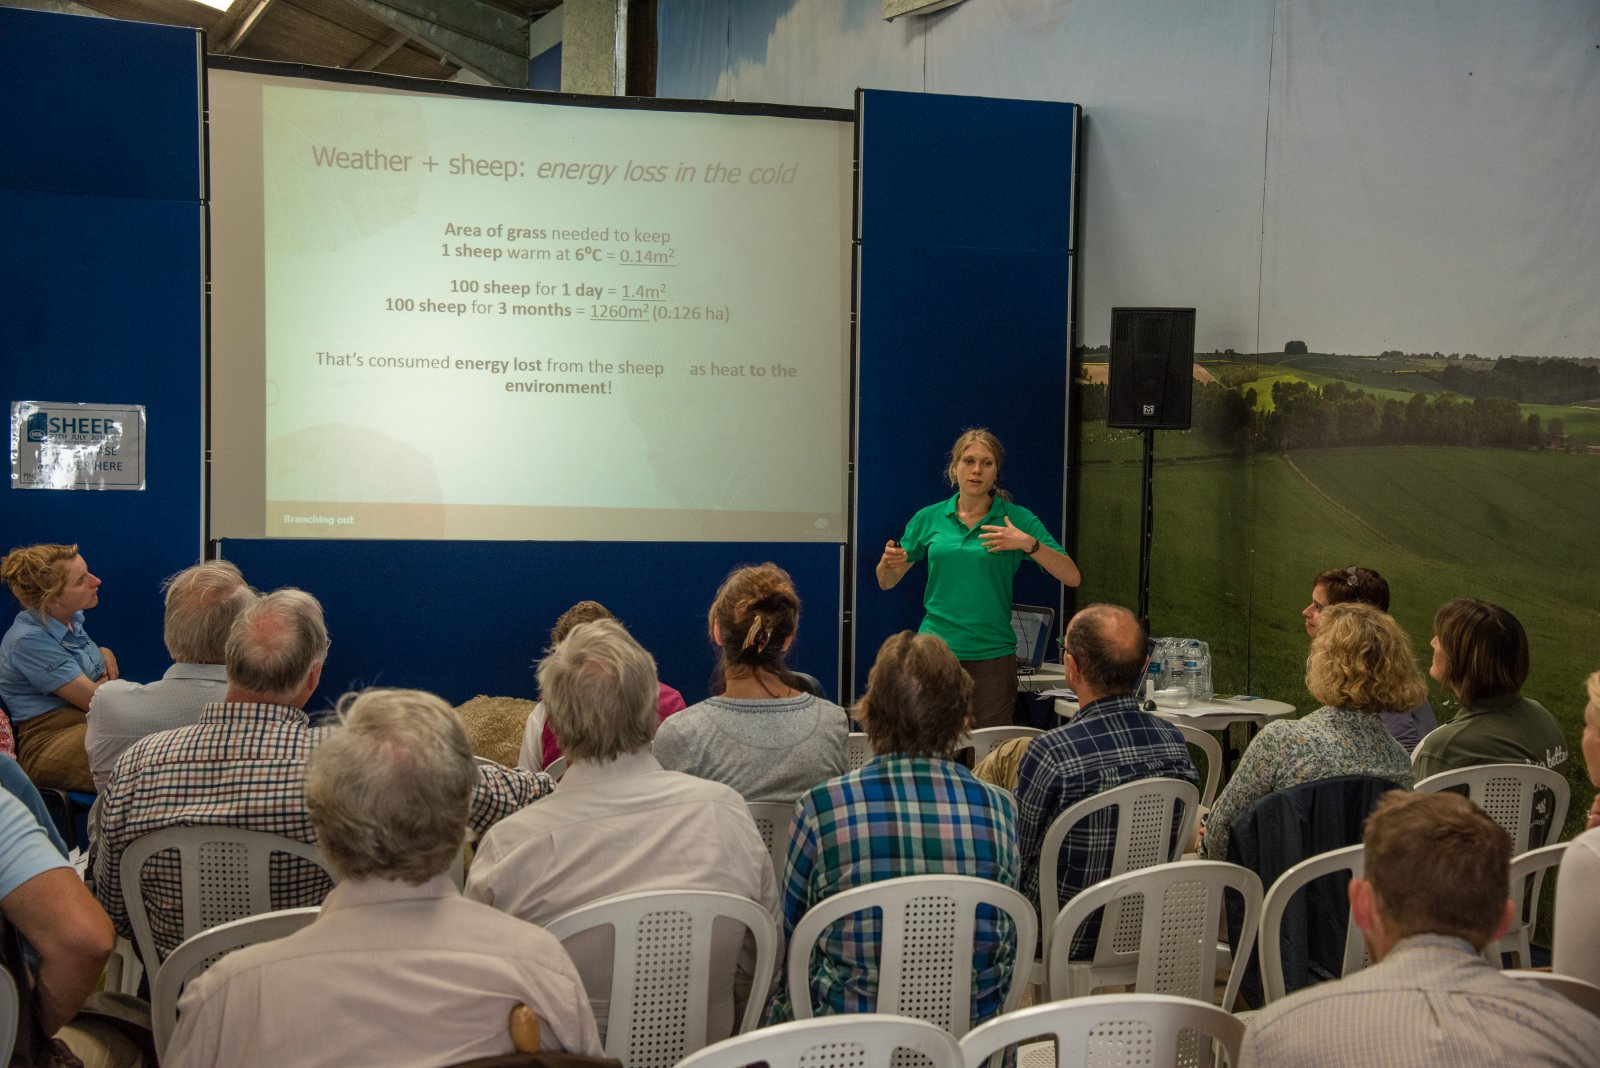 A relatively new addition to NSA Sheep Events, the workshop area was again a popular attraction